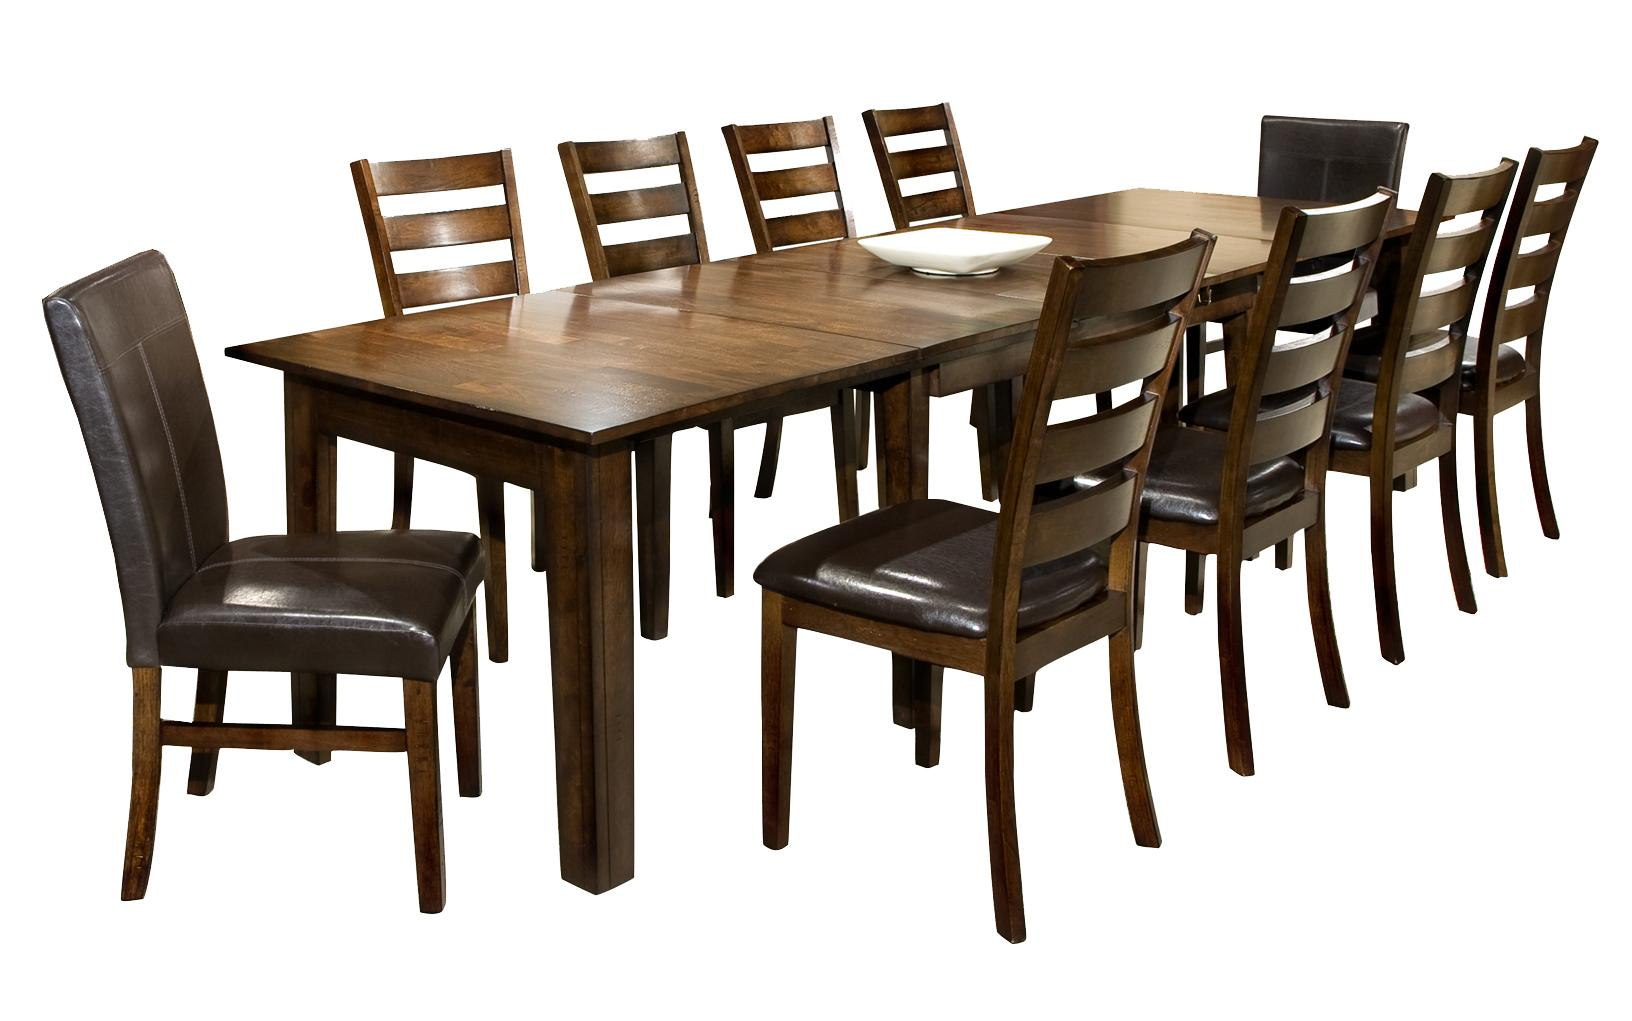 Intercon Kona 11 Piece Dining Set With Table And Chairs Wayside Furniture Dining 7 Or More Piece Sets